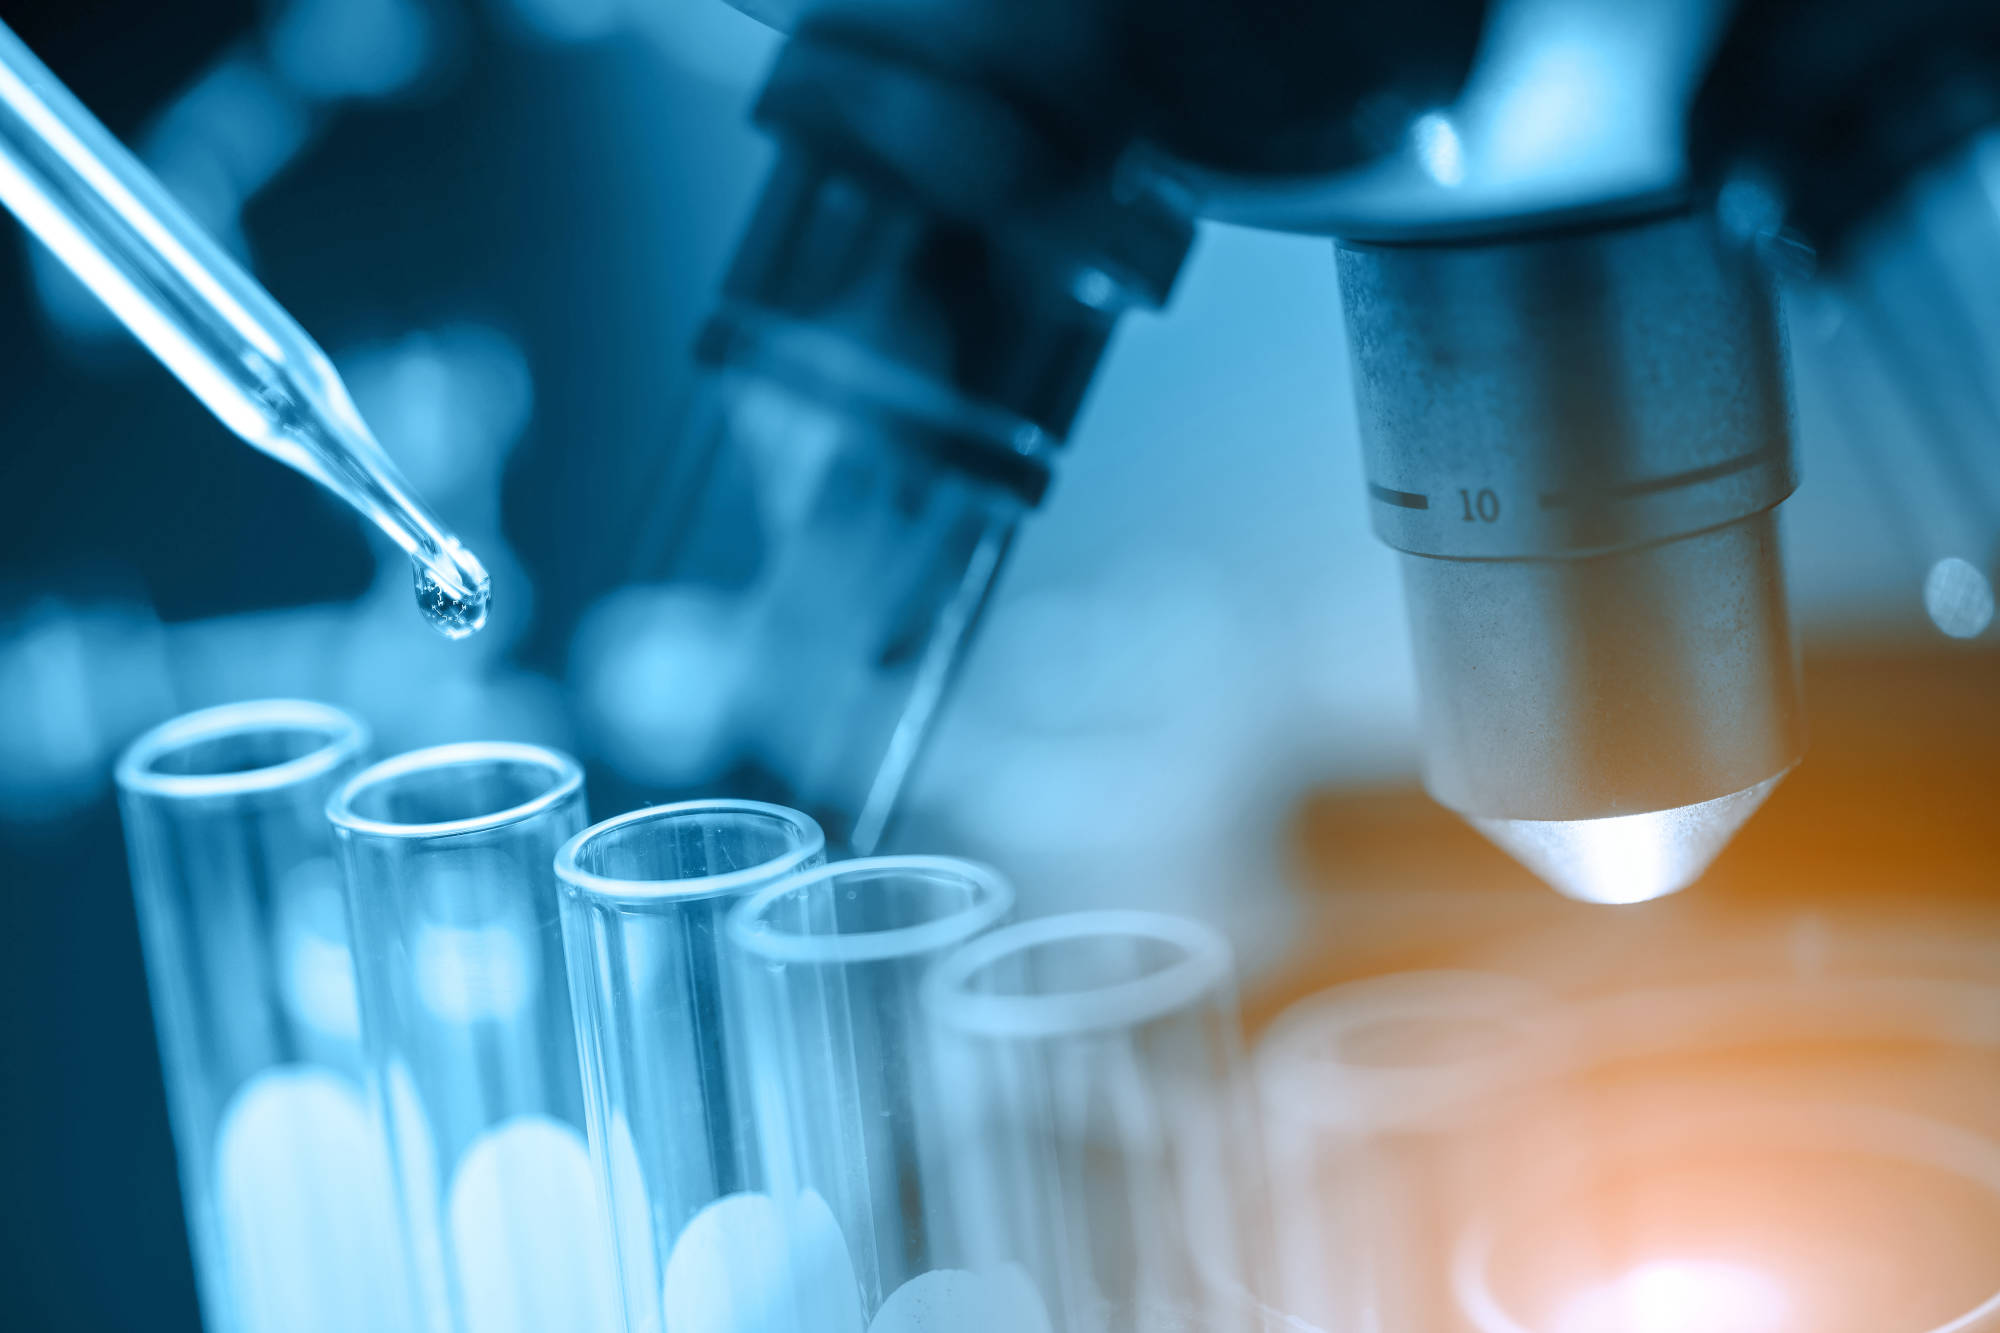 ADMA Biologics Soars as FDA Approves Increased Production can now produce up to 600,000 liters of its humoral